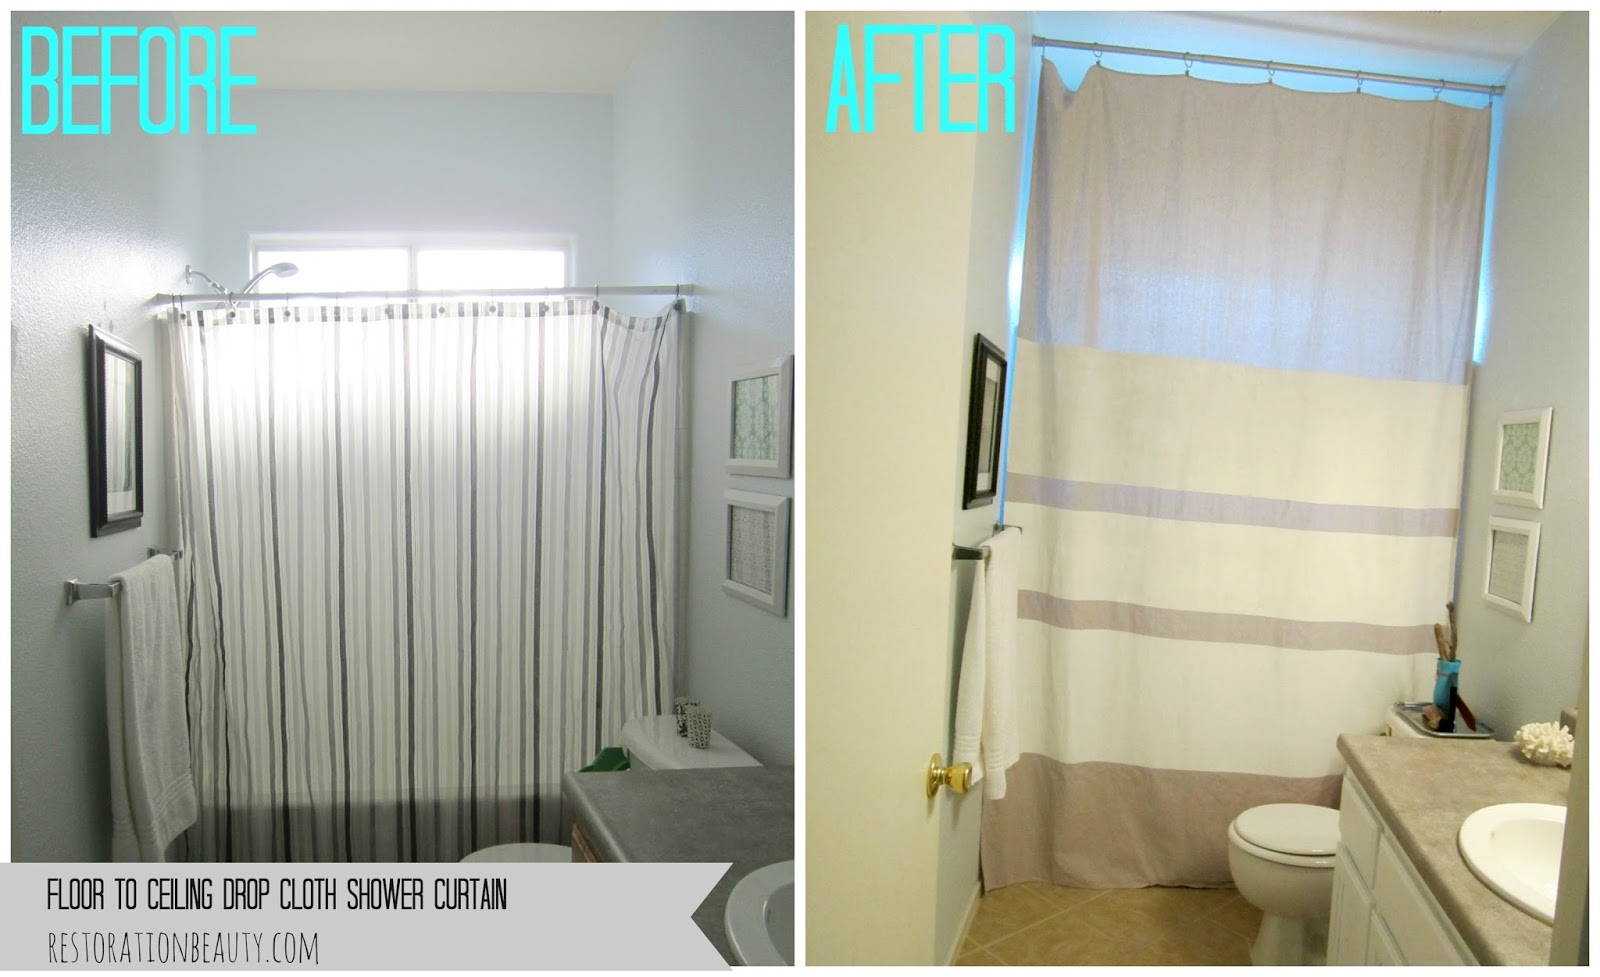 Floor To Ceiling Drop Cloth Shower Curtain